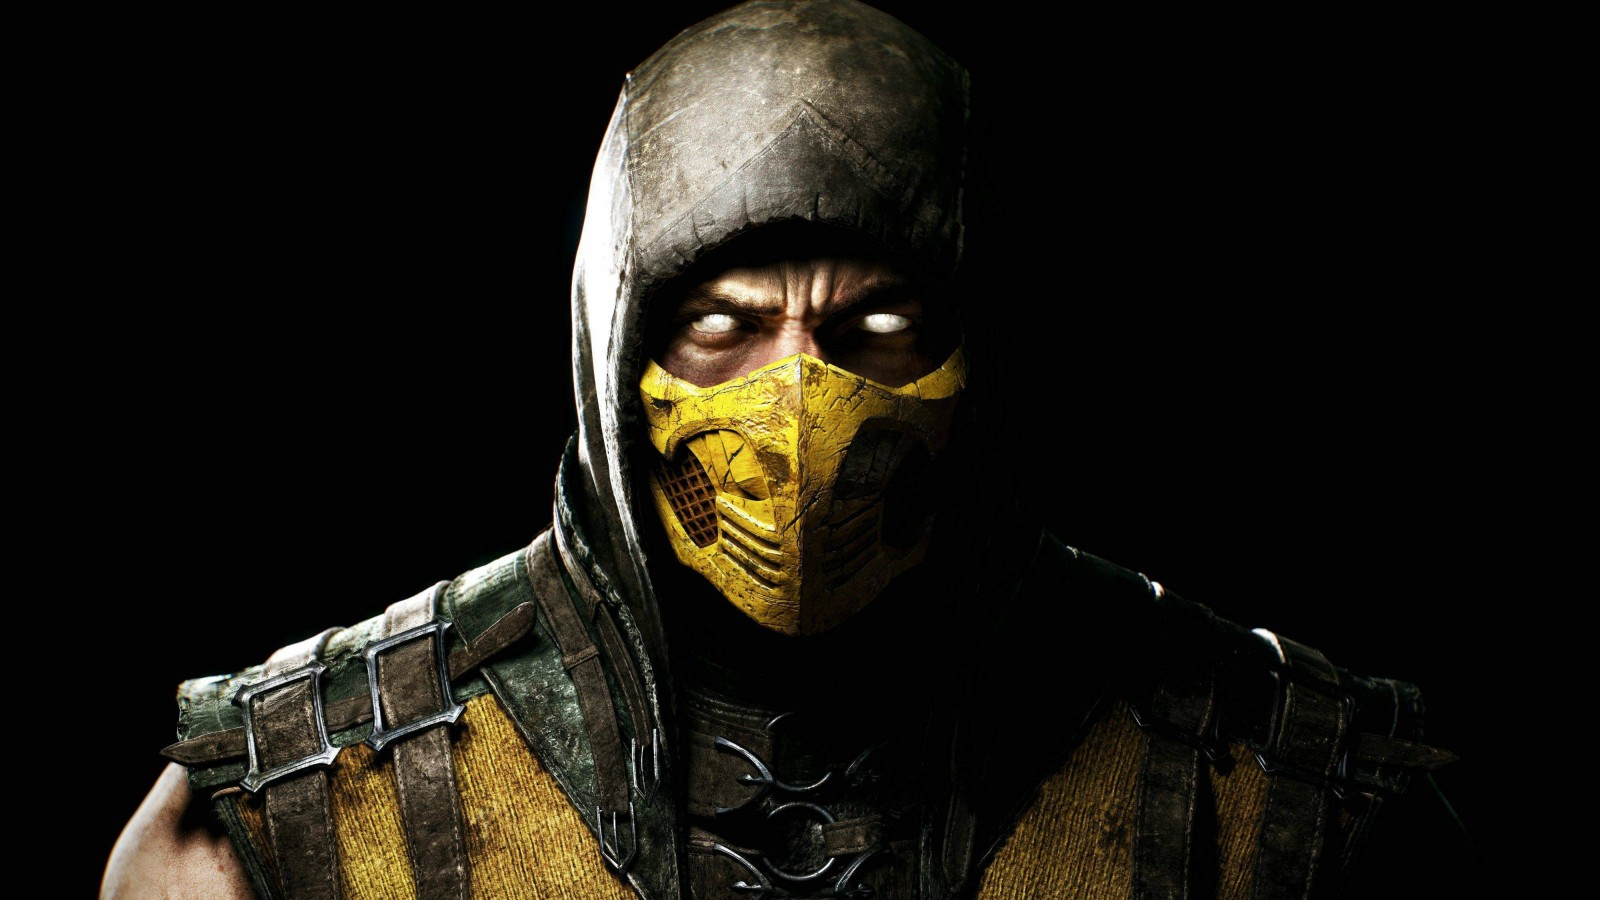 Scorpion Mortal Kombat X Wallpaper for Desktop 1600x900